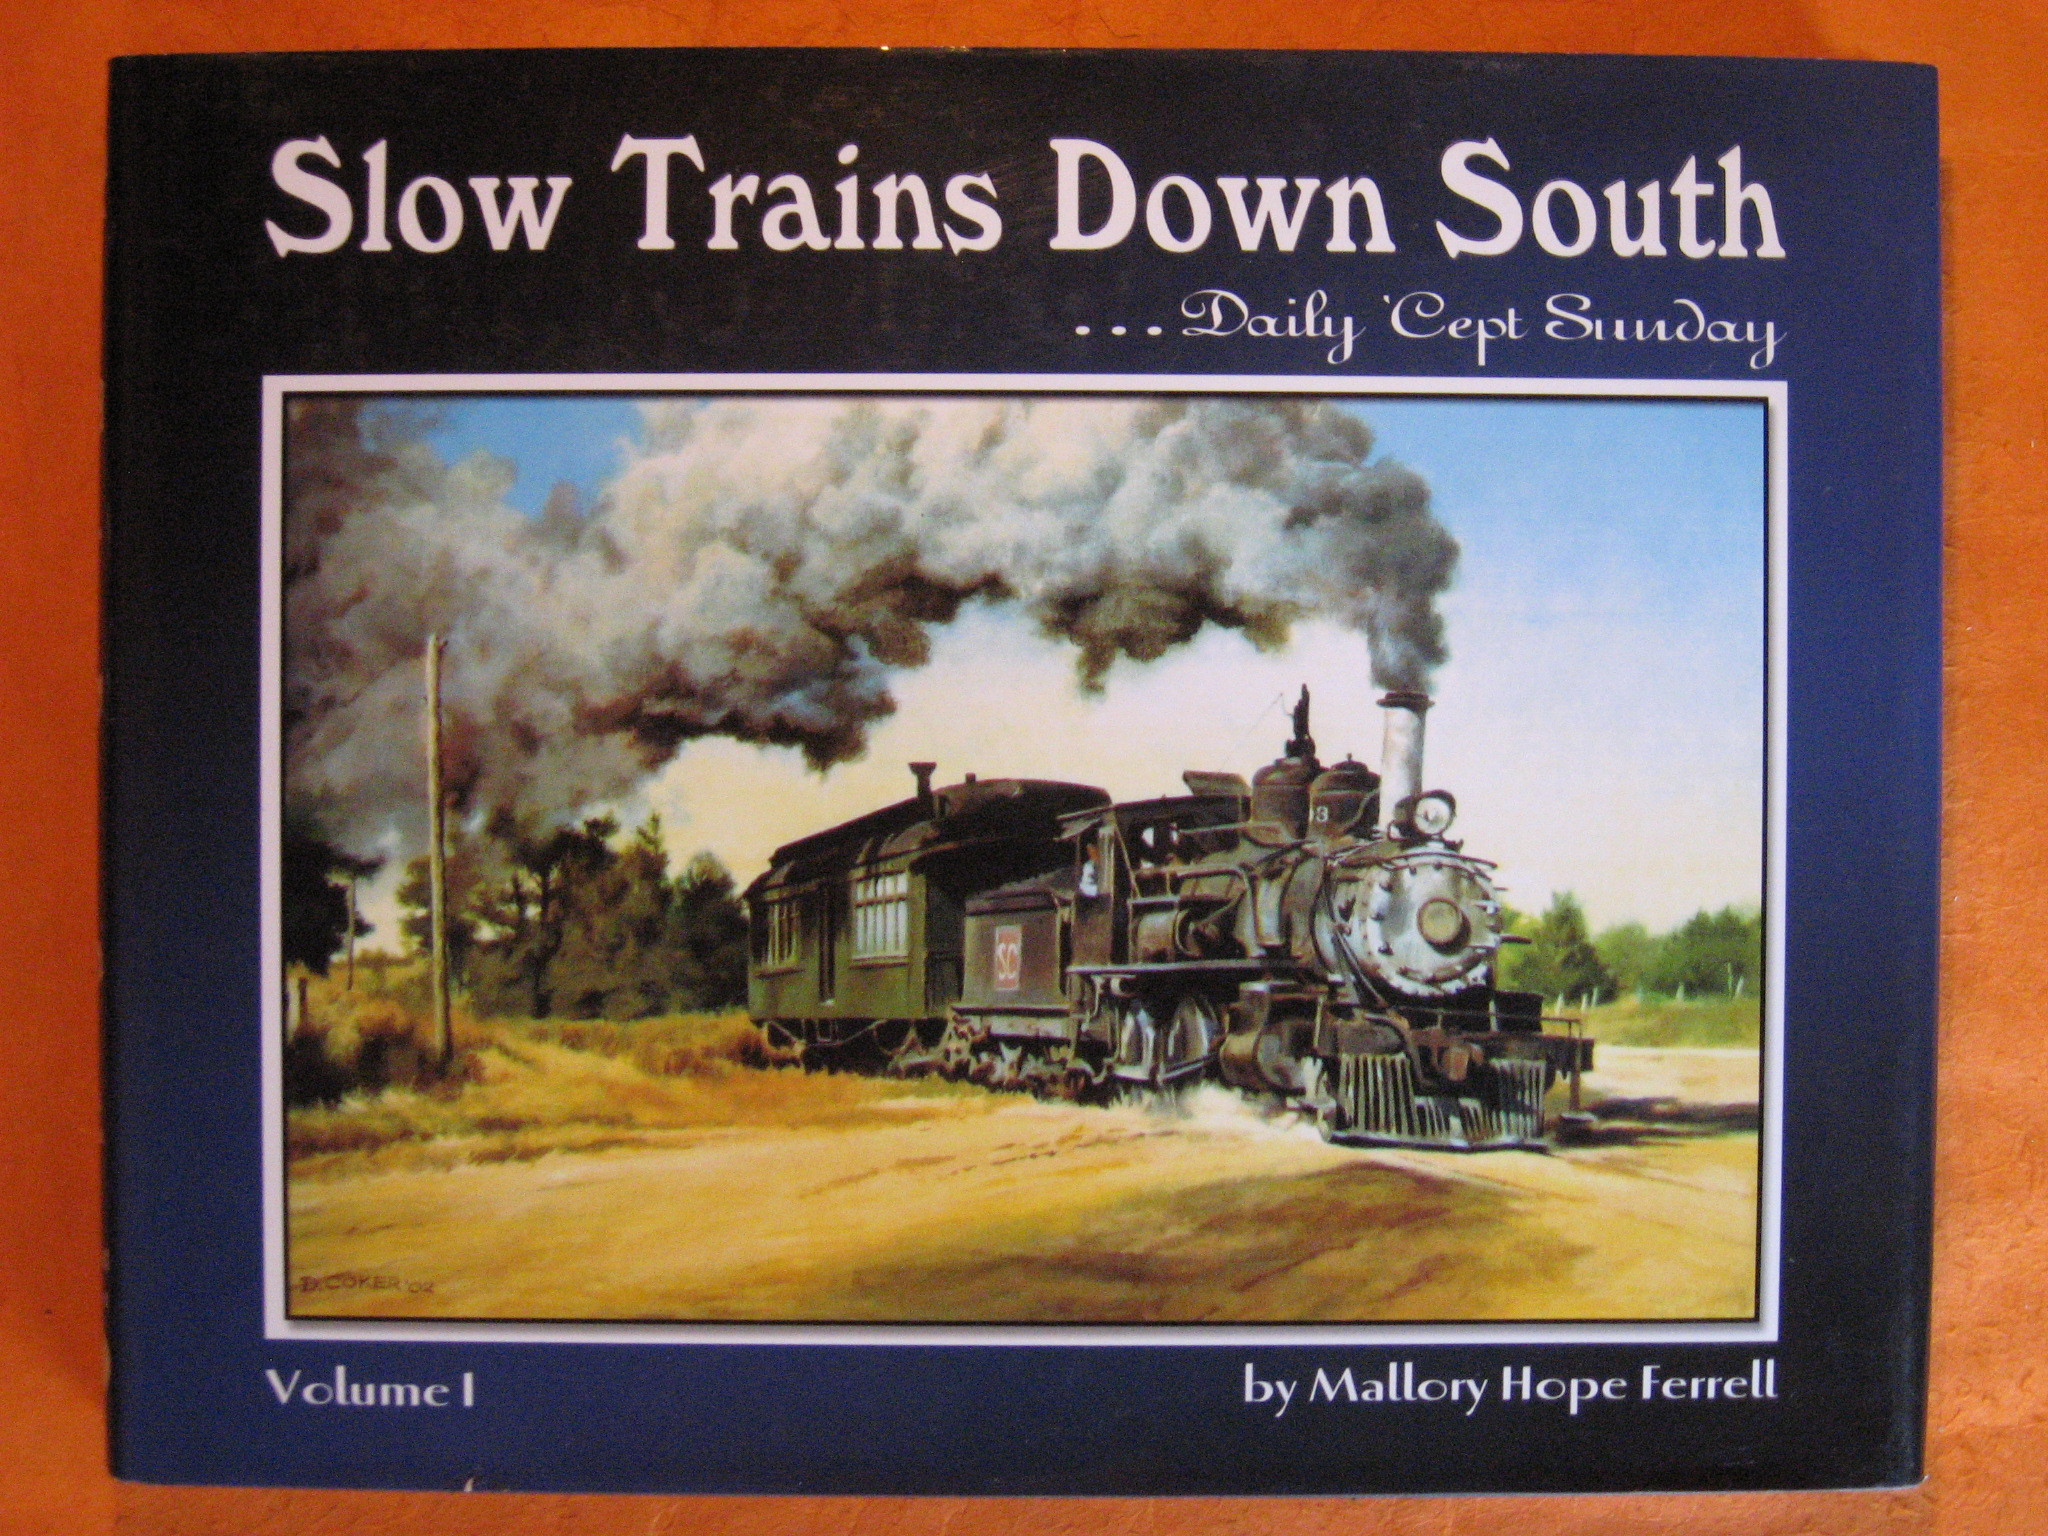 Slow Trains Down South, Vol. 1: Daily 'Cept Sunday, Mallory Hope Ferrell